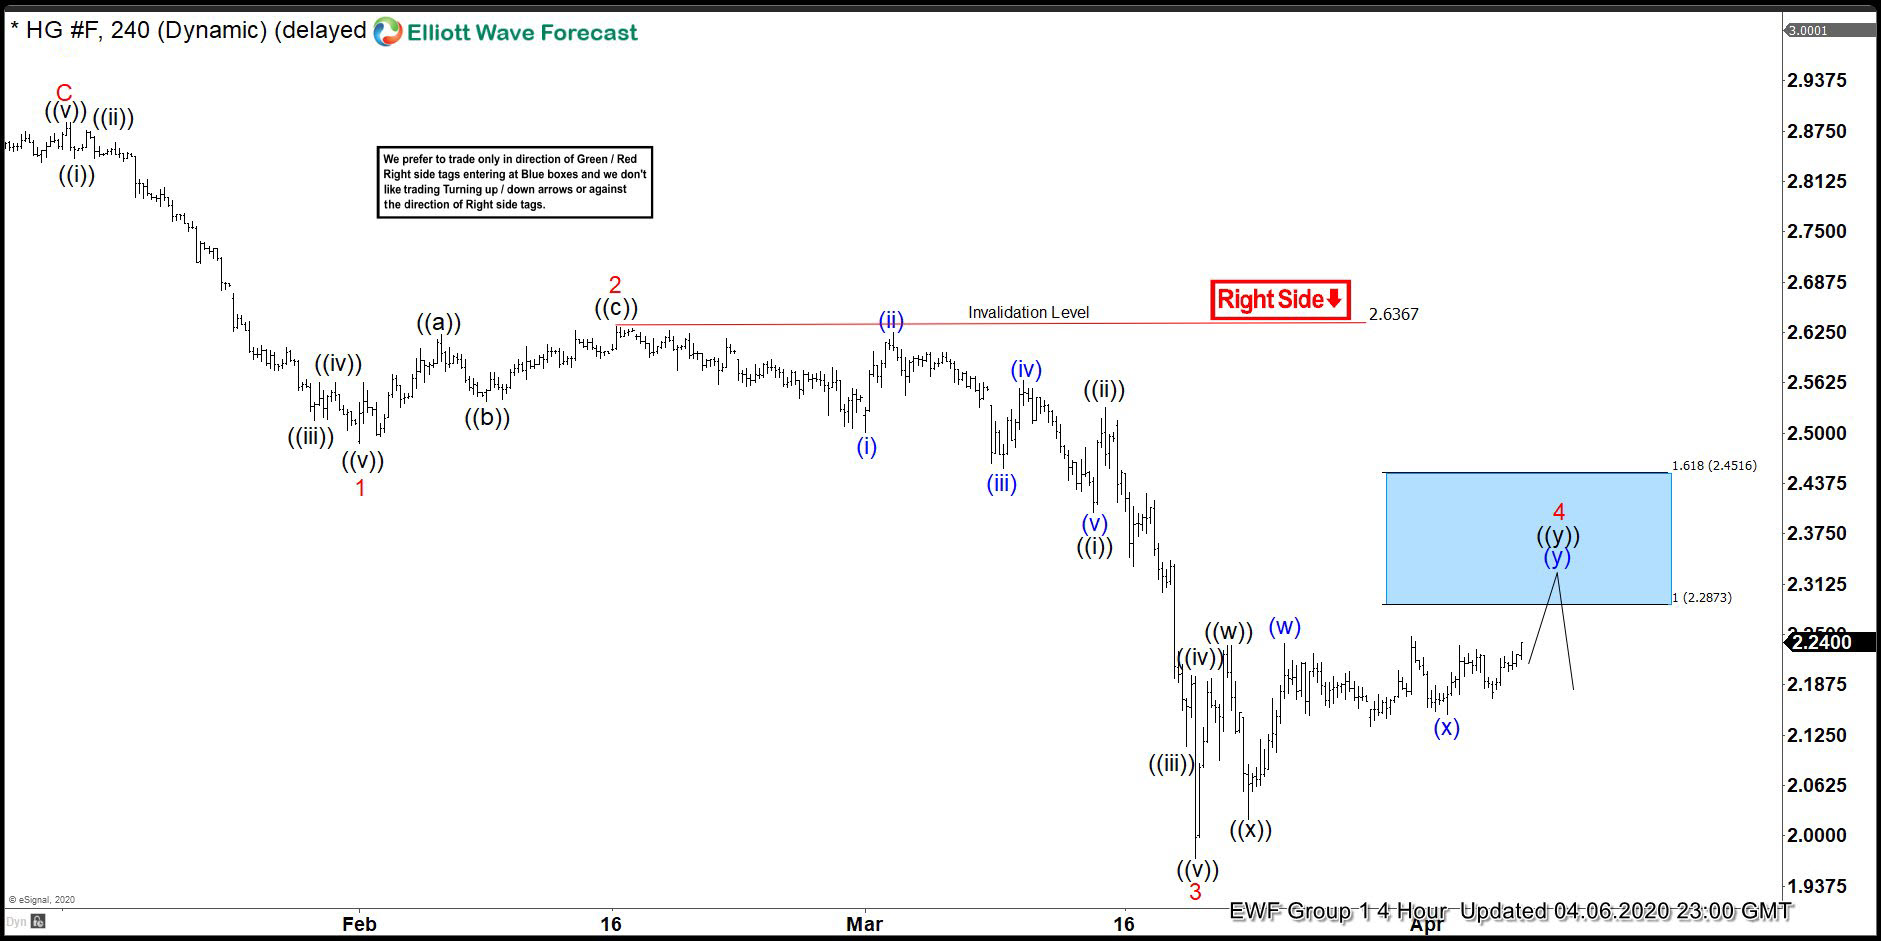 COPPER ( $HG_F ) Forecasting The Decline From The Blue Box Area